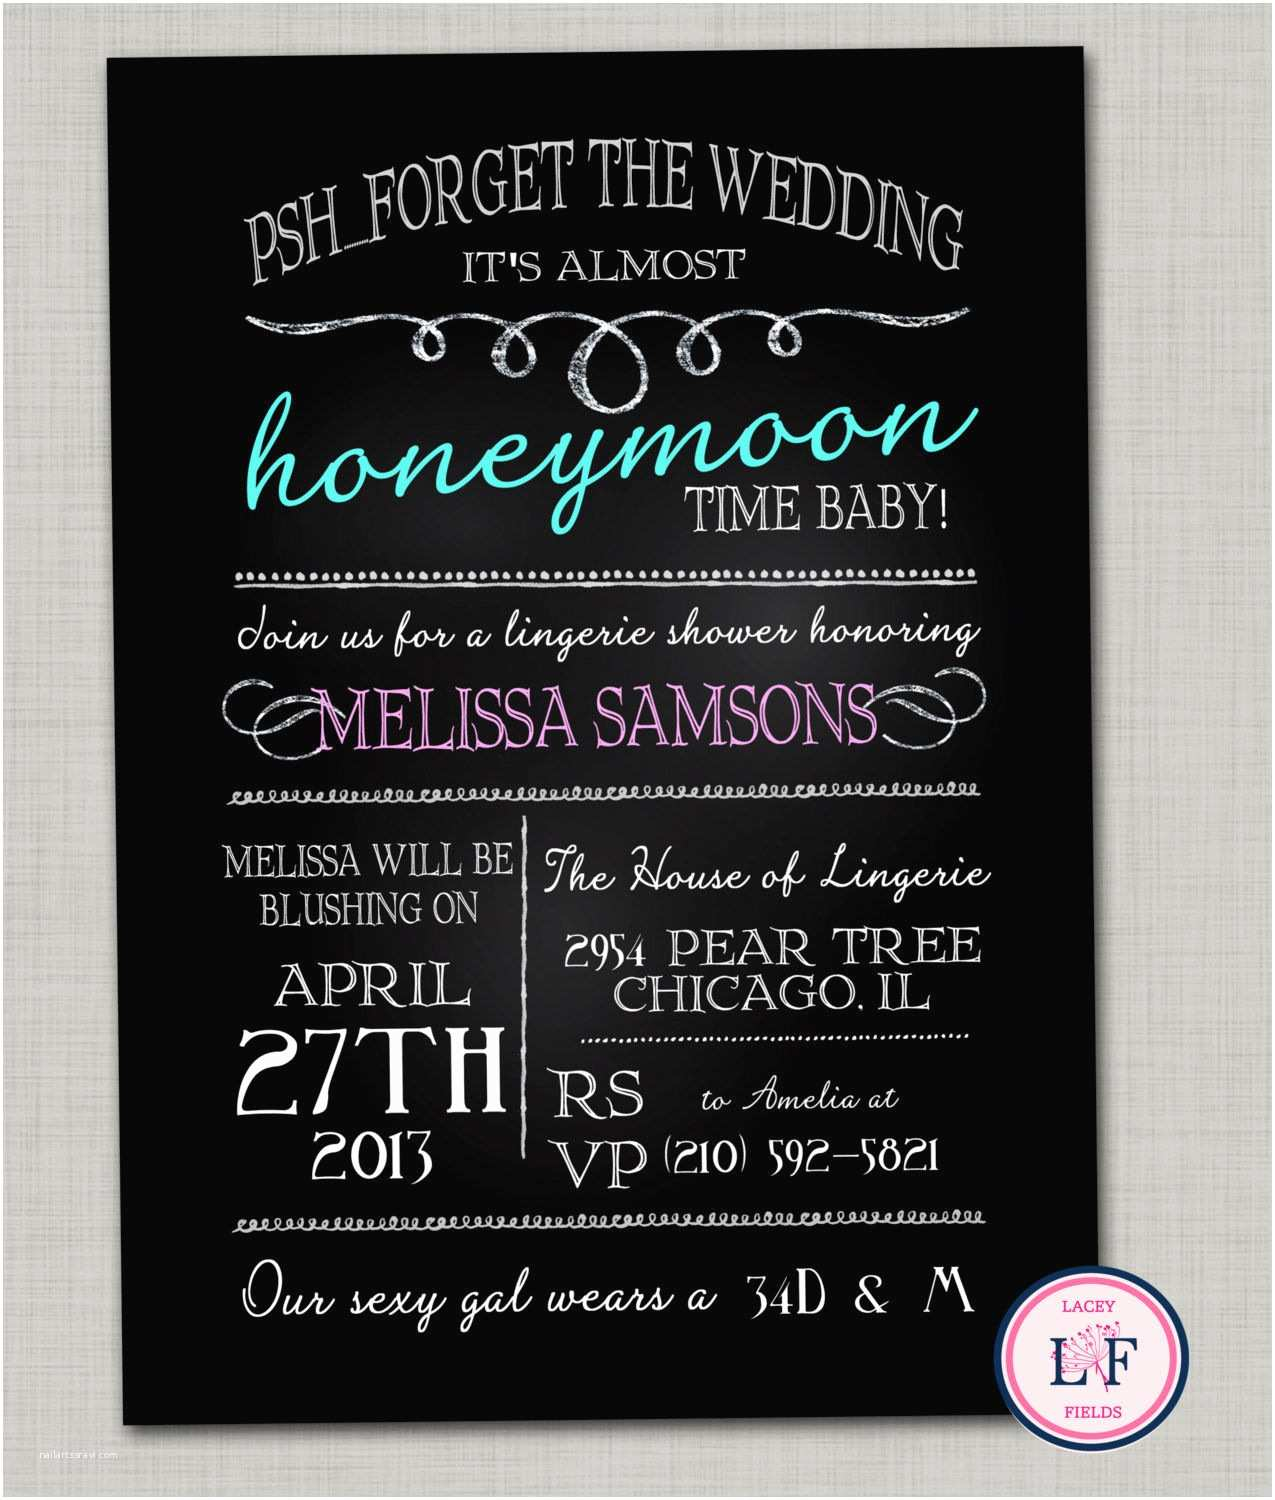 Engagement Party Invitation Wording Funny Engagement Party Invitation Wording Efficient